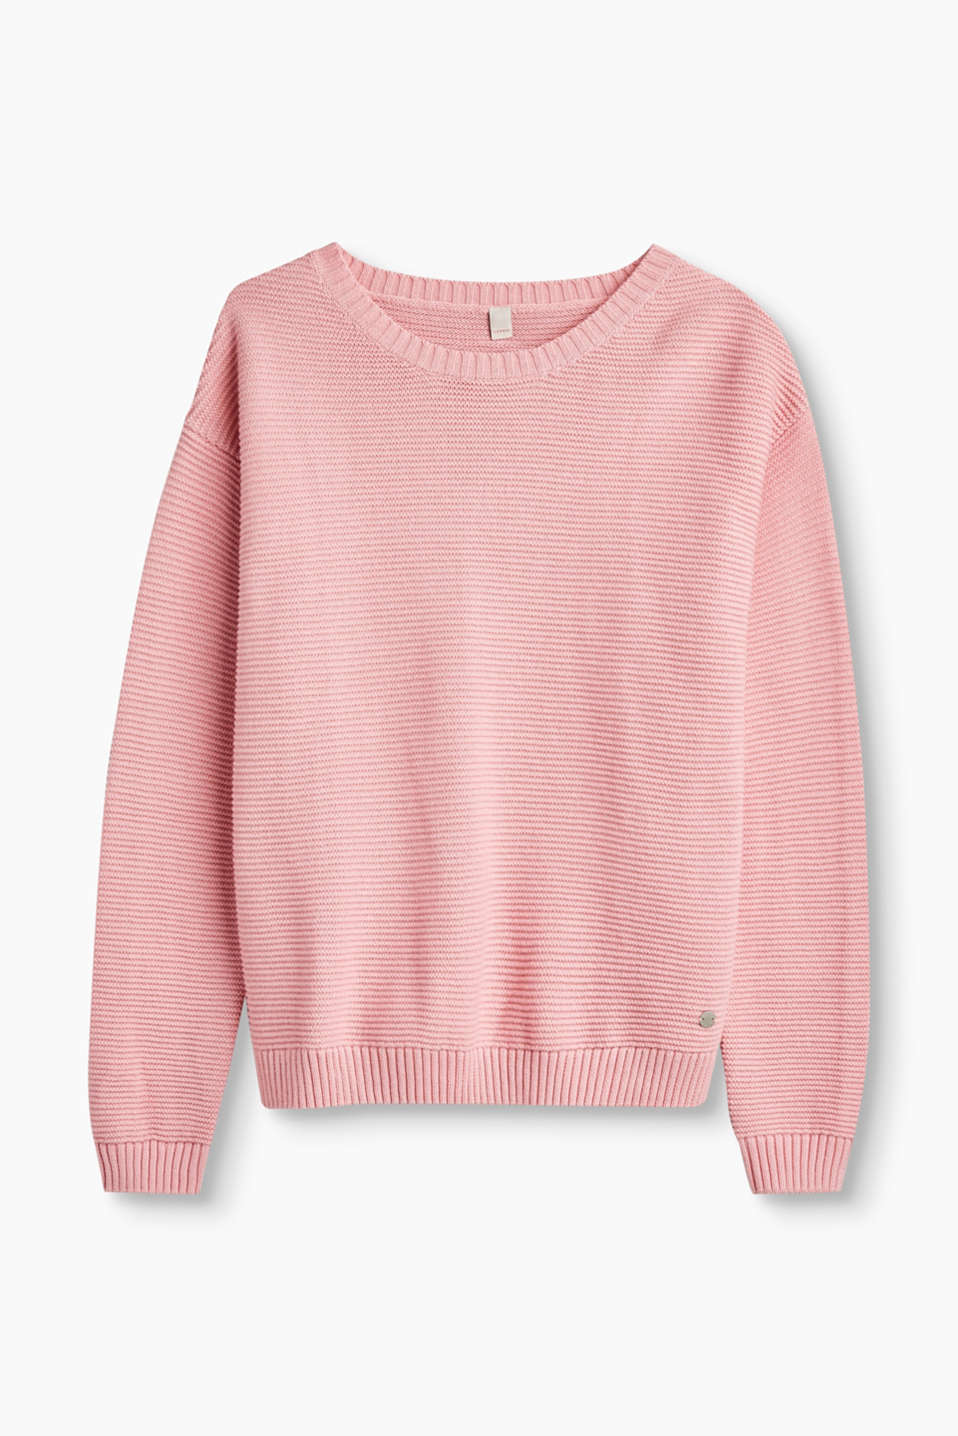 Esprit - Knitted jumper in pure cotton